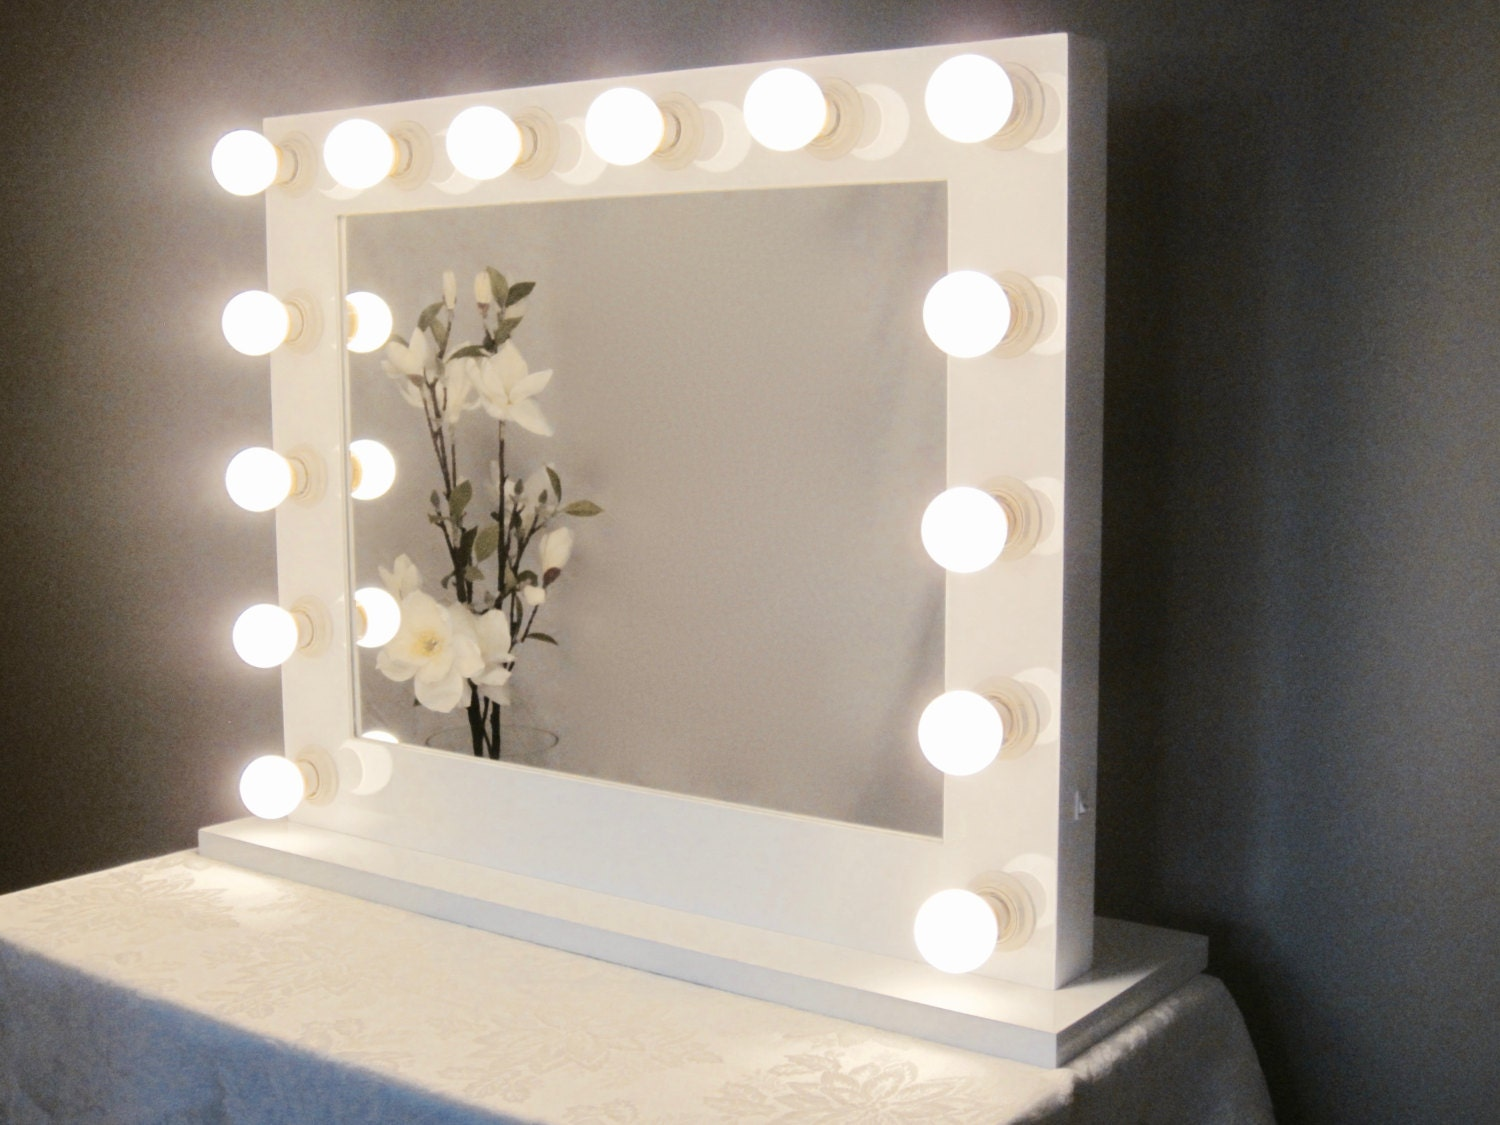 Lighted Vanity Mirror Large : Lighted Vanity Mirrors Wall Mounted Mam94836 48 Quot WidexOPENING NIGHT Large Rectangular Wall ...